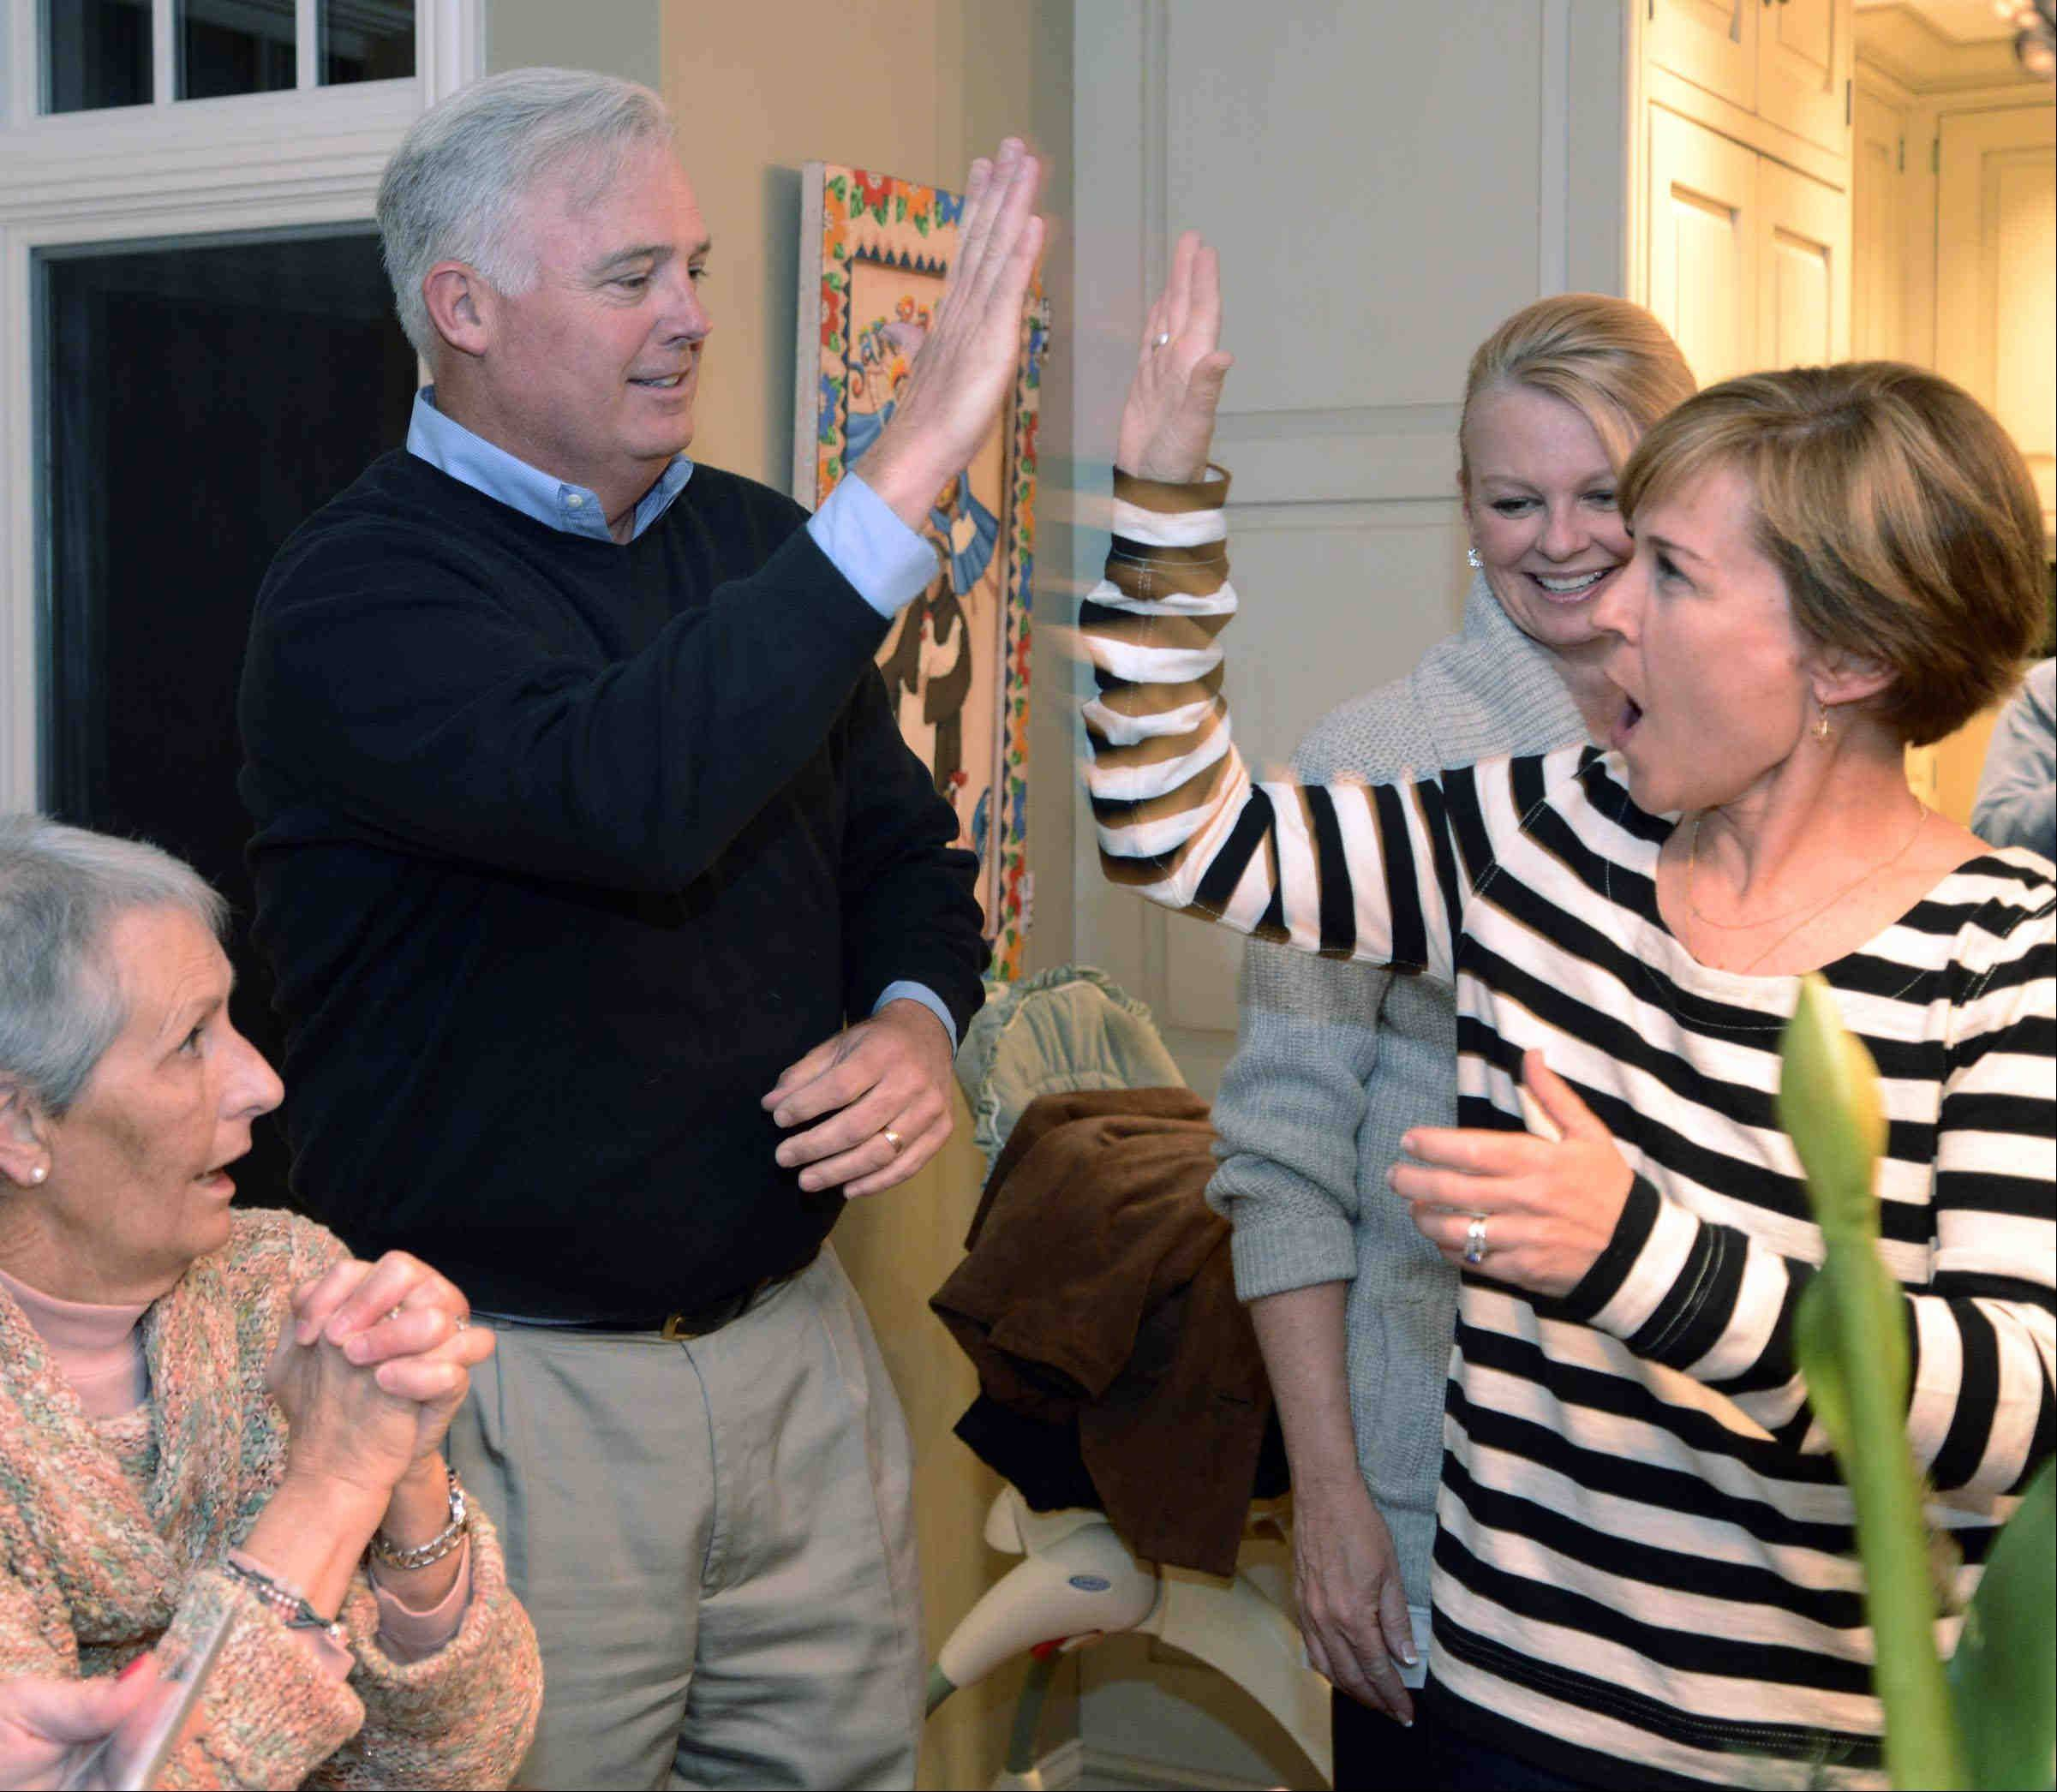 Barrington Hills Village President-elect Martin McLaughlin celebrates at his election night party with running mate Colleen Konicek Hannigan, who was elected trustee Tuesday night. McLaughlin defeated two-term Village President Robert Abboud.